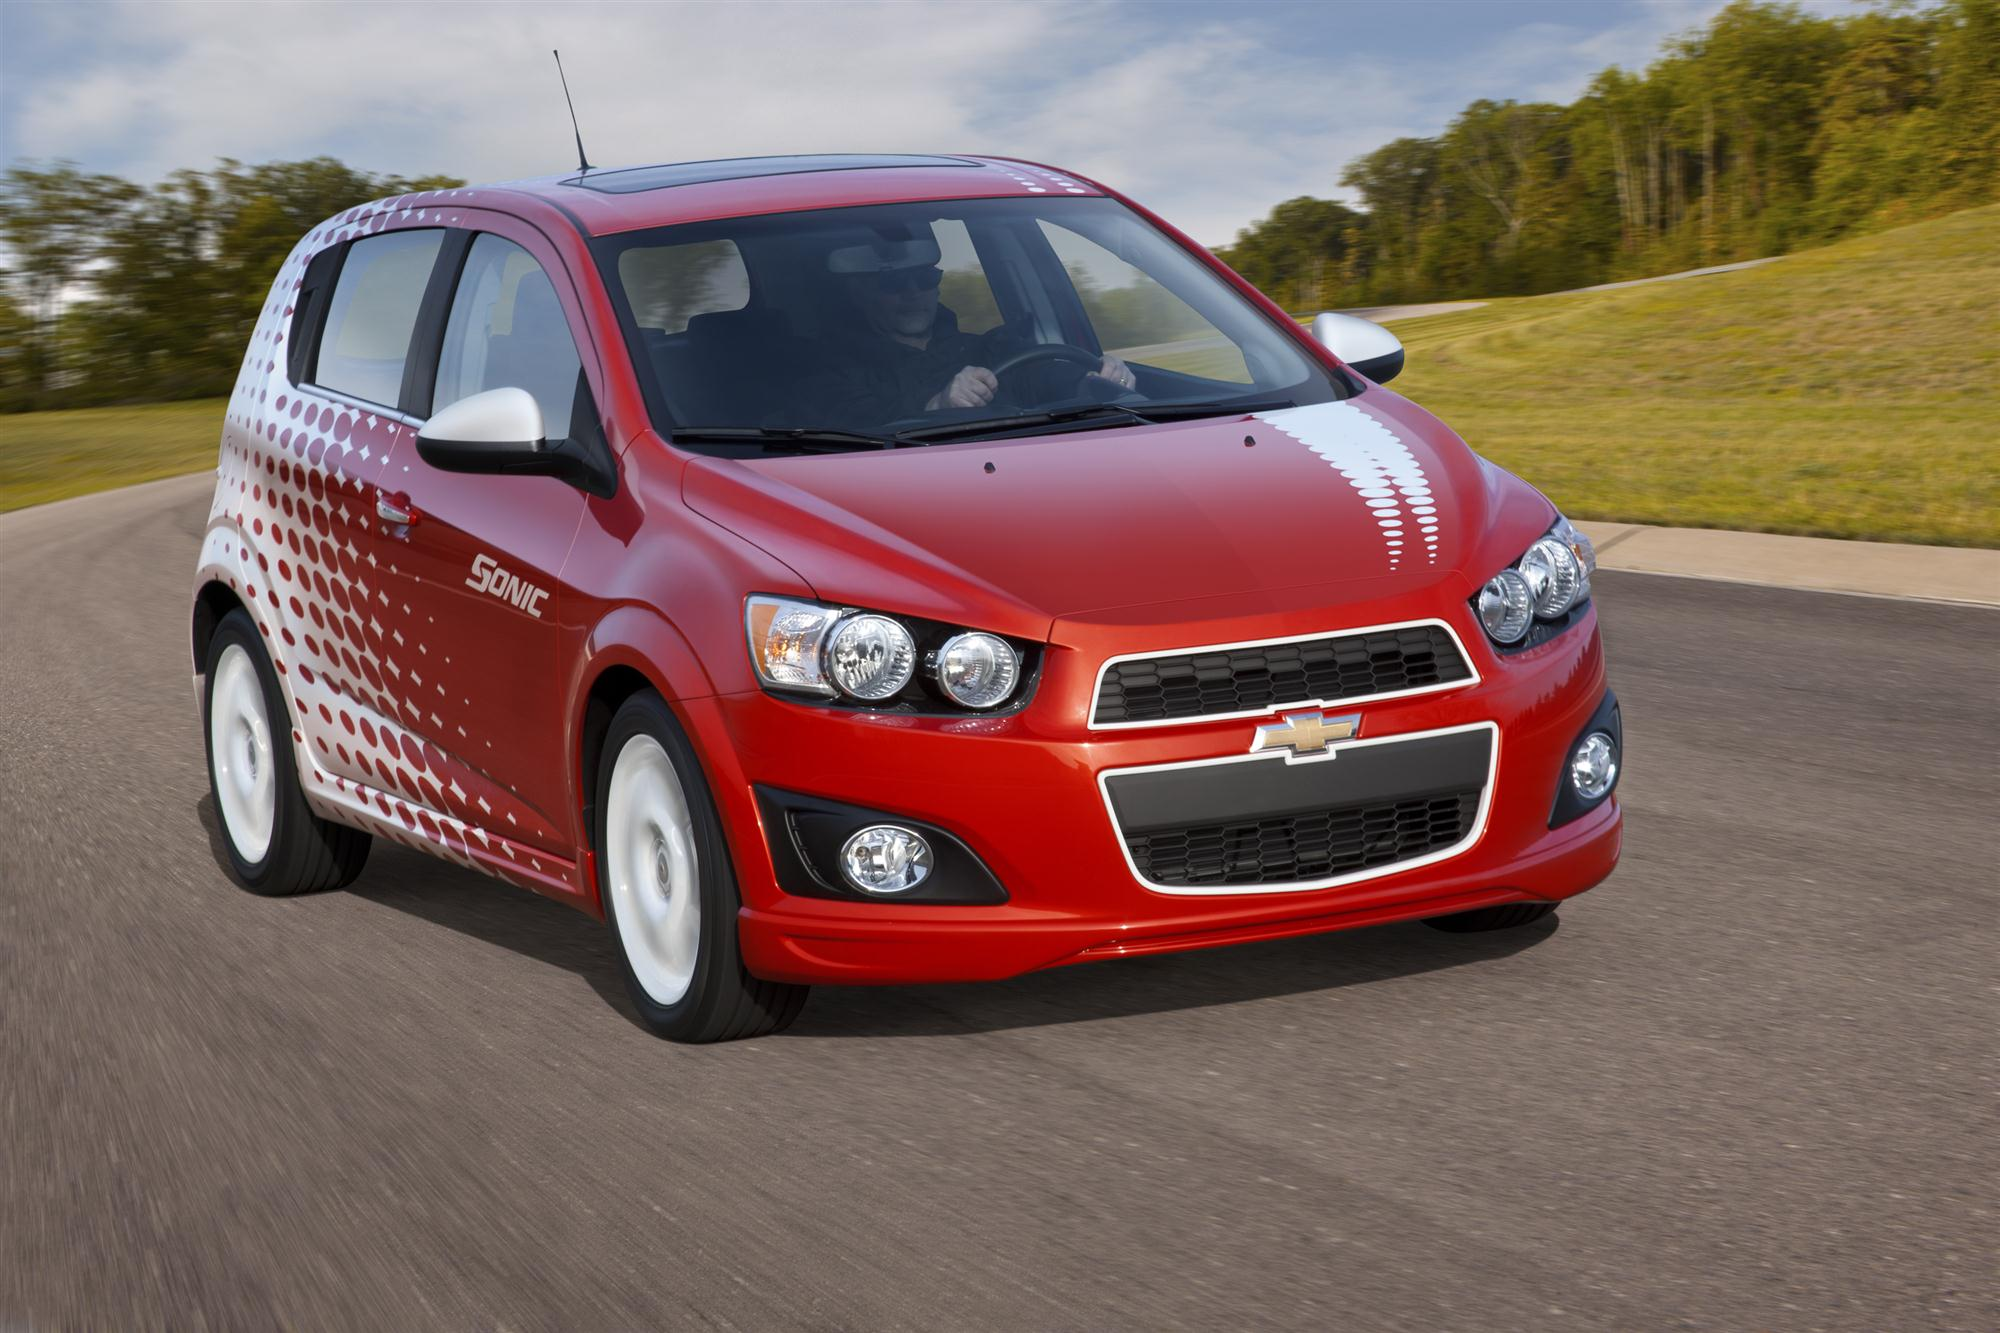 2012 Chevy Sonic Priced From 14 495 400 More For Hatchback